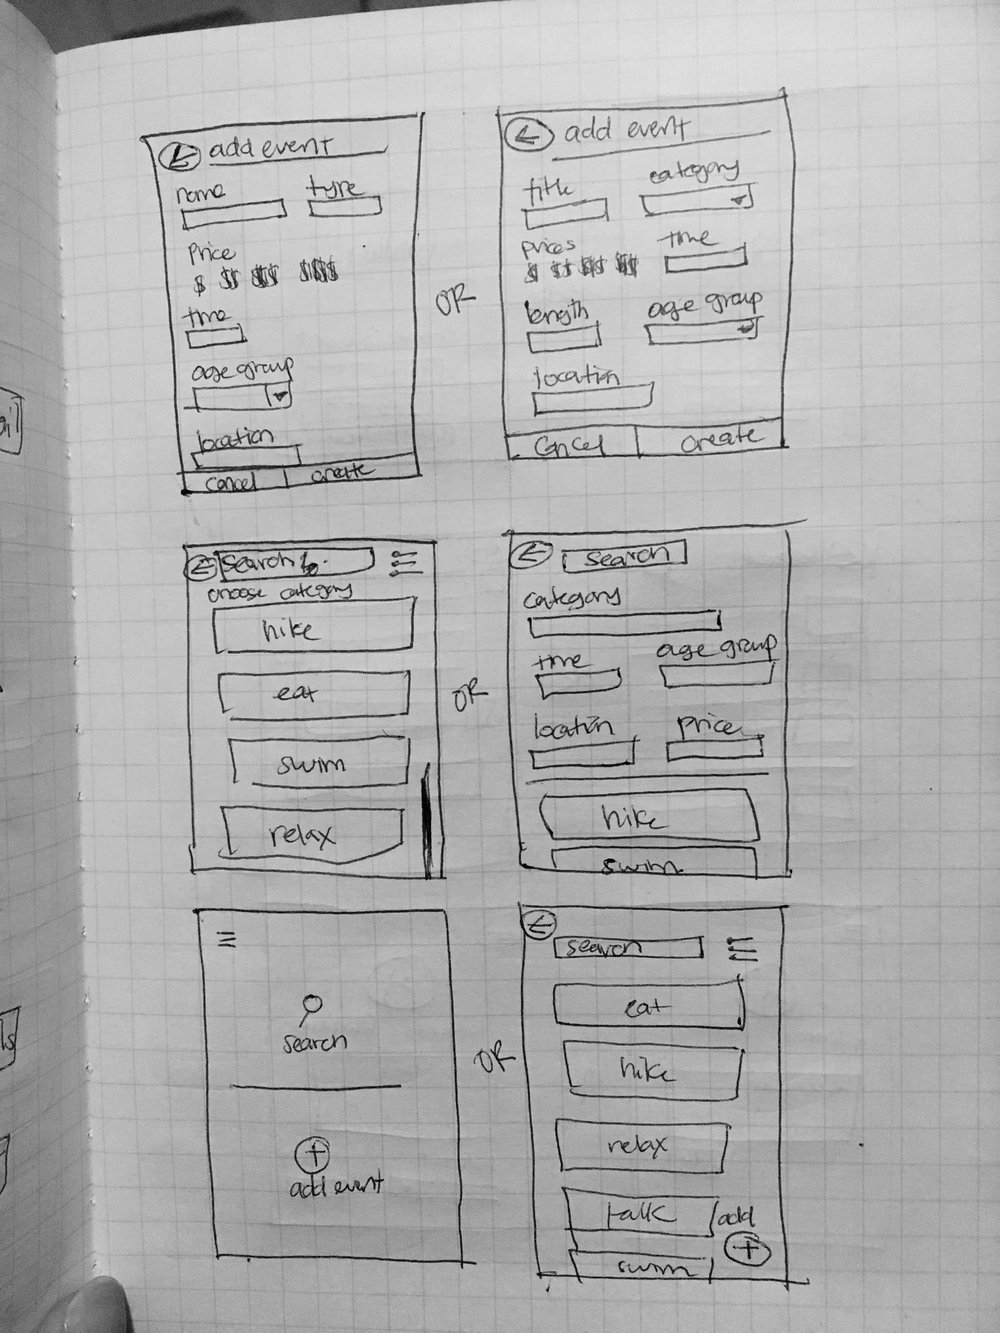 3. Detailing searching and adding an event wireframe